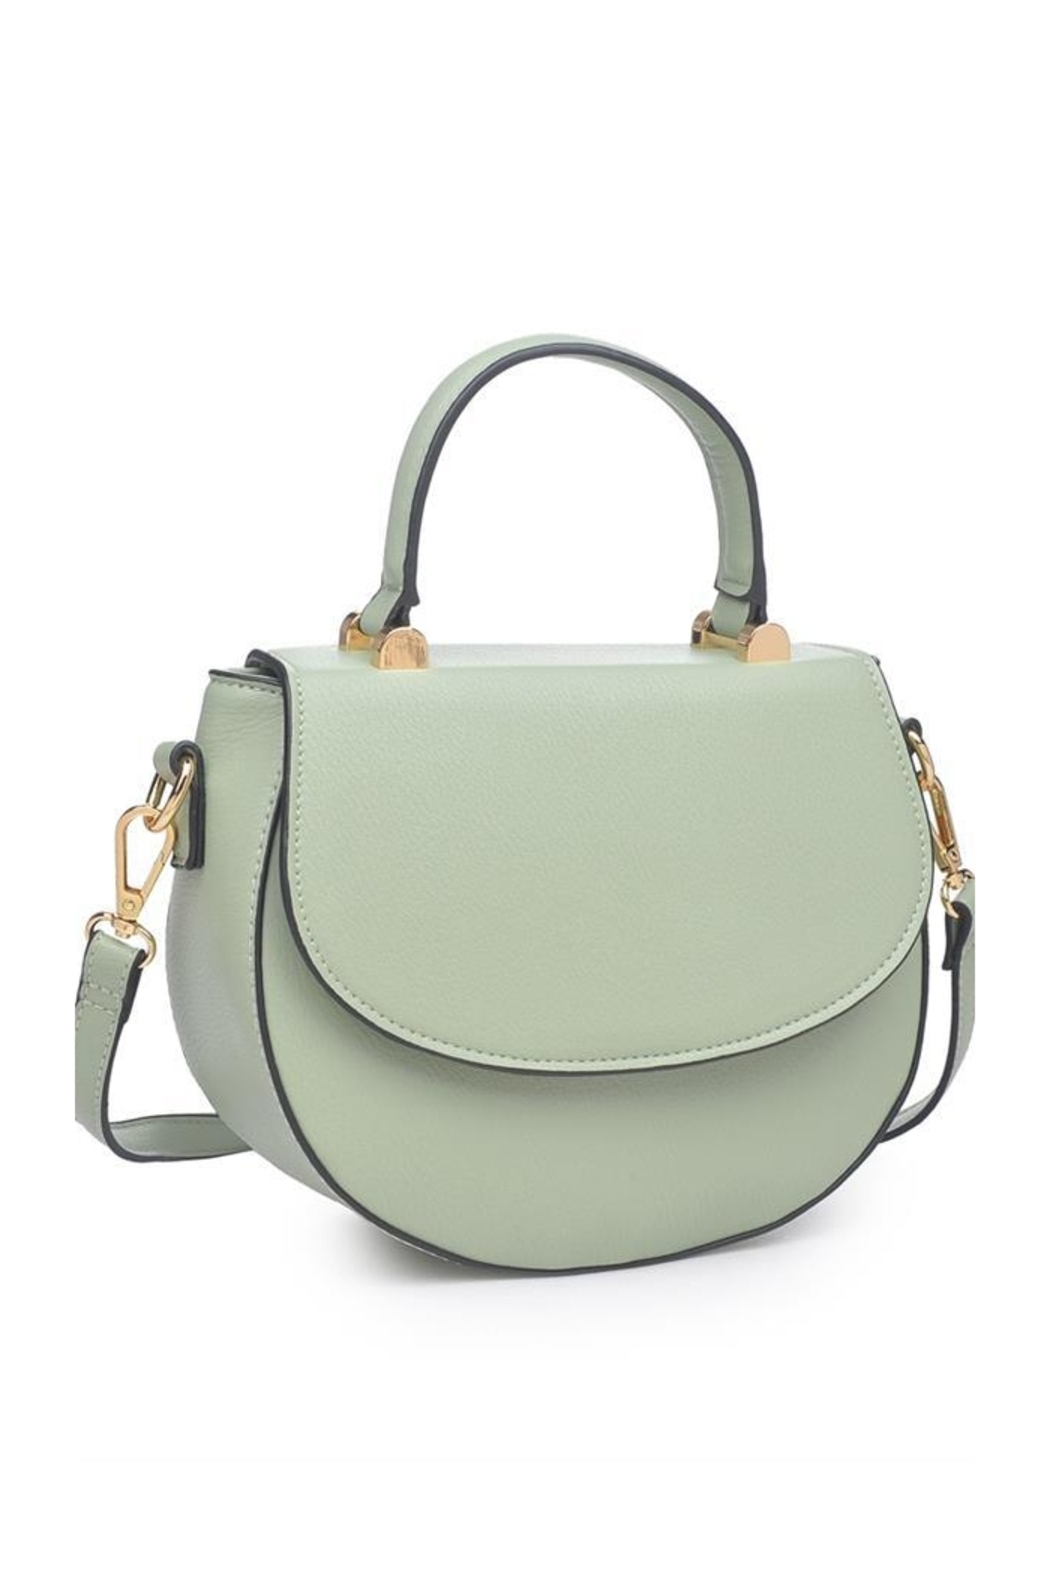 8405cc4ba4e Urban Expressions Basil Crossbody from New York by Let s Bag It ...